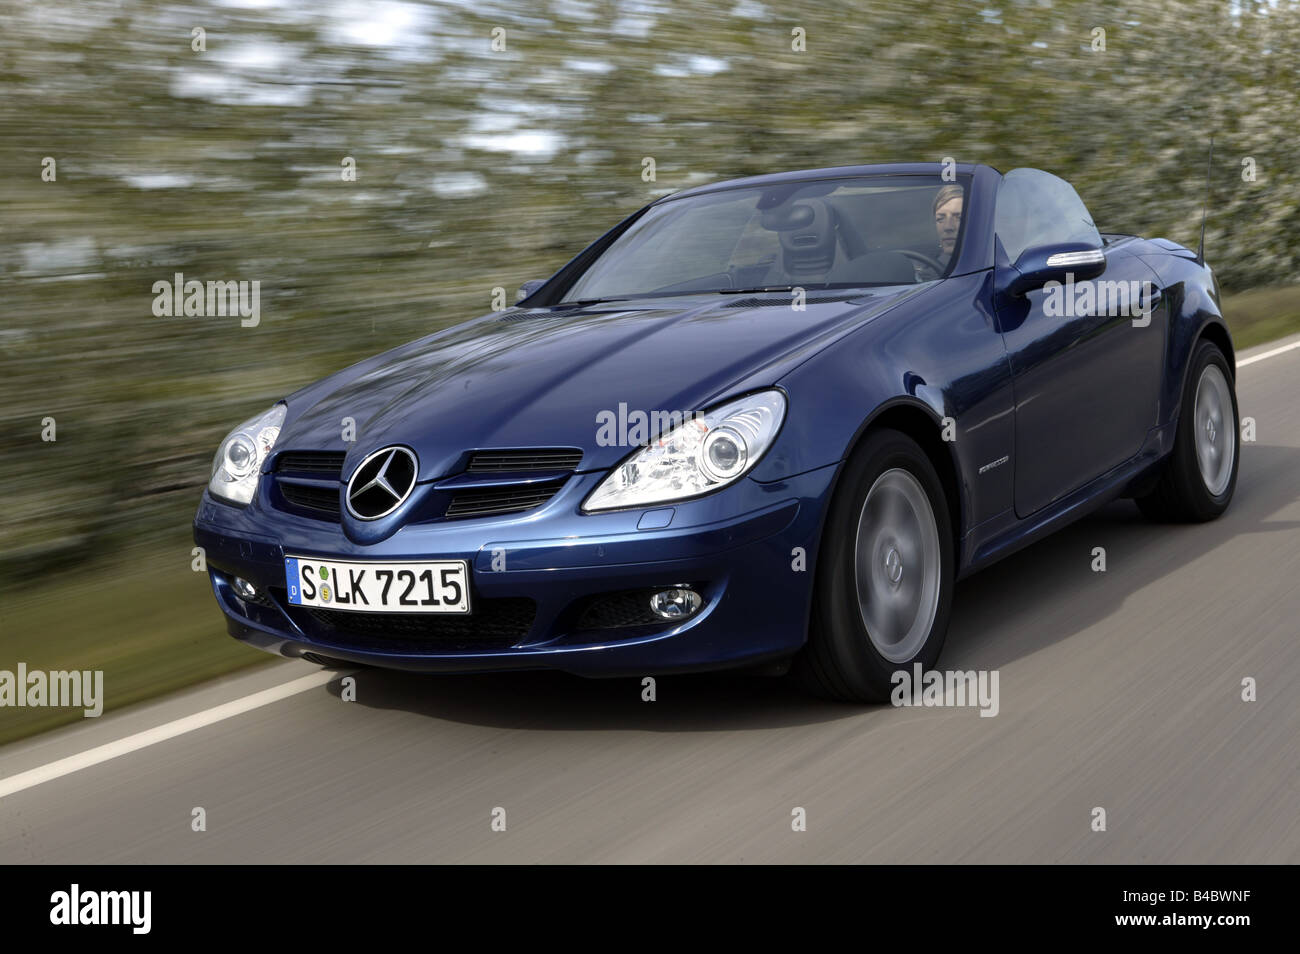 car mercedes slk 200 compressor convertible model year 2004 stock photo royalty free image. Black Bedroom Furniture Sets. Home Design Ideas